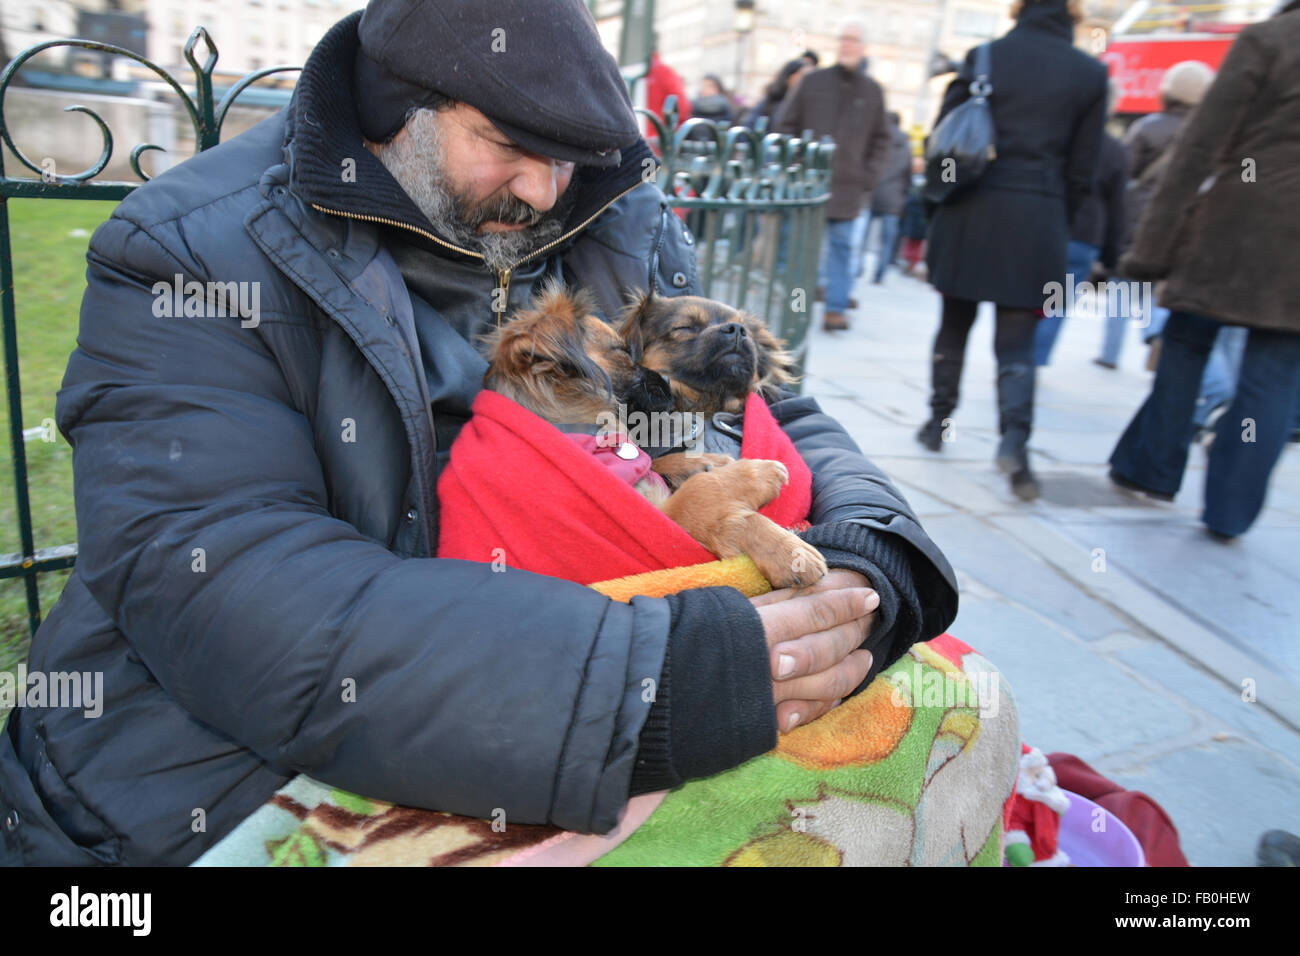 A homeless man at the steps of Notre Dame Cathedral, Paris with two puppies asleep in his arms. - Stock Image